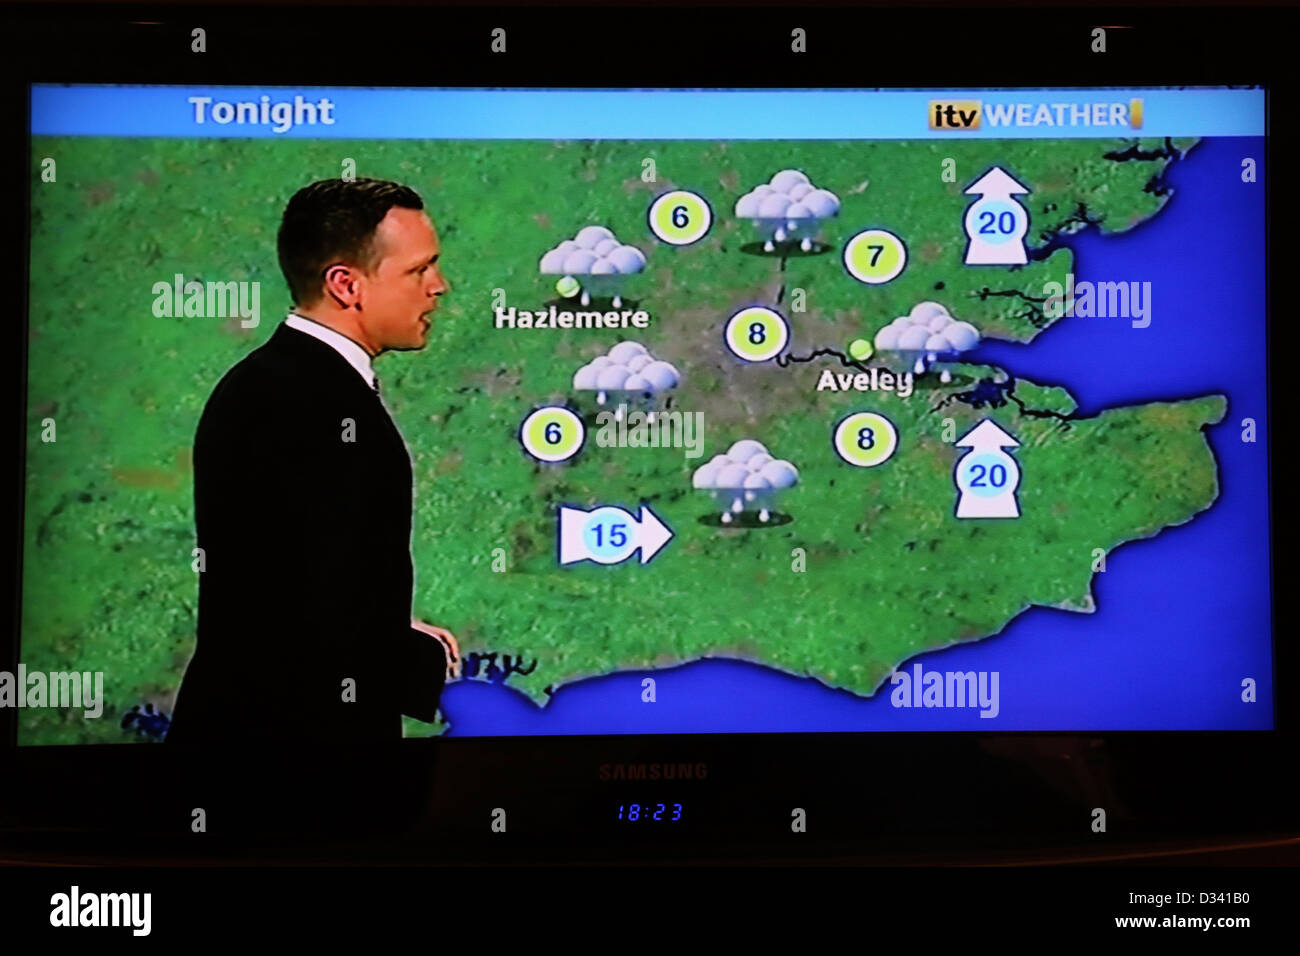 Weather Forecast On Samsung Flat Screen Television - Stock Image